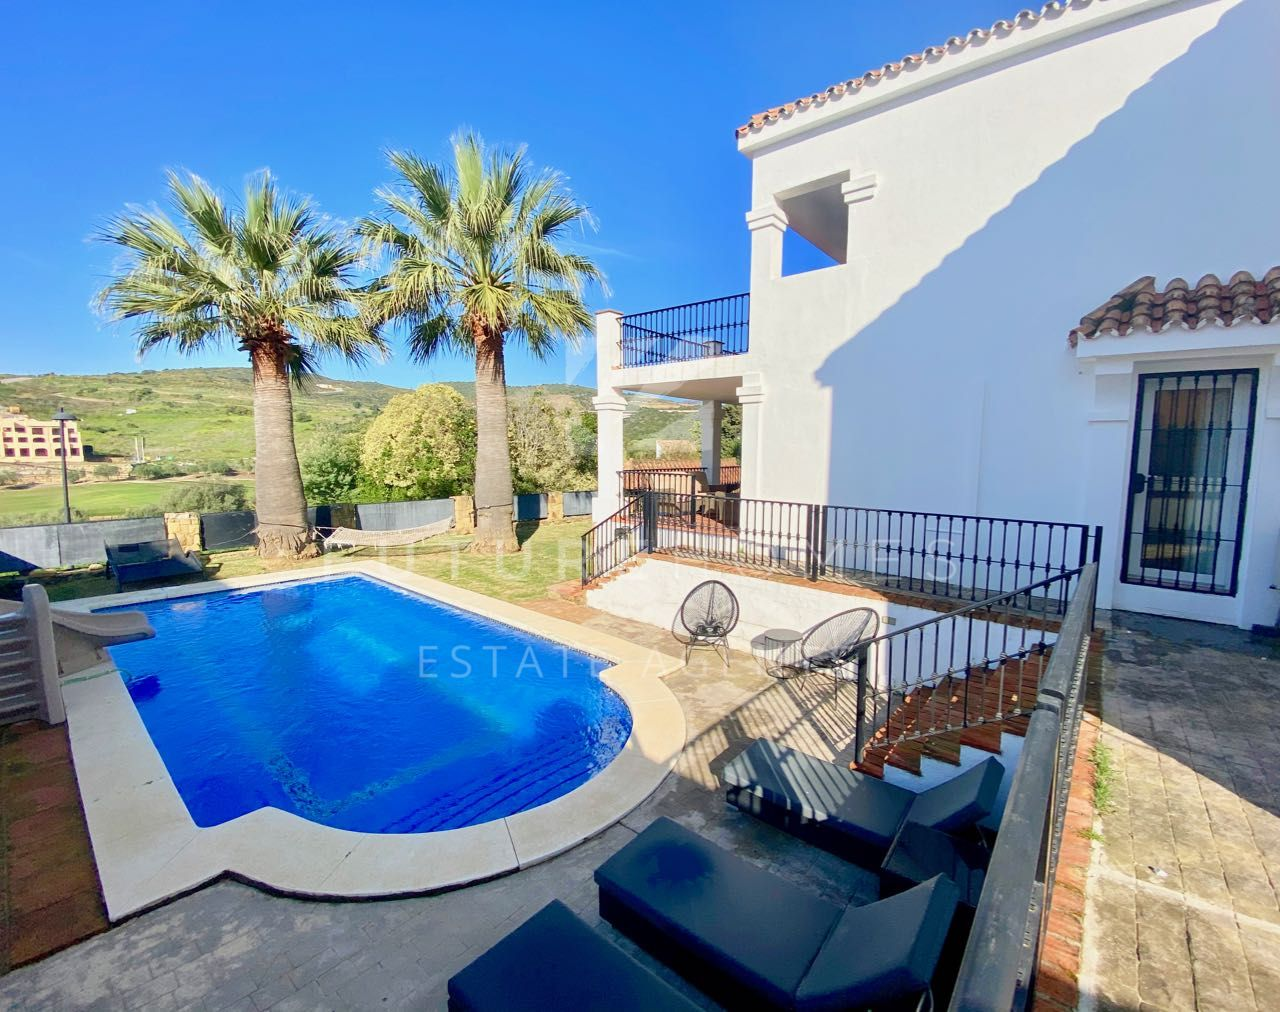 Superb villa for sale in Valle Romano with swimming pool and open West facing views